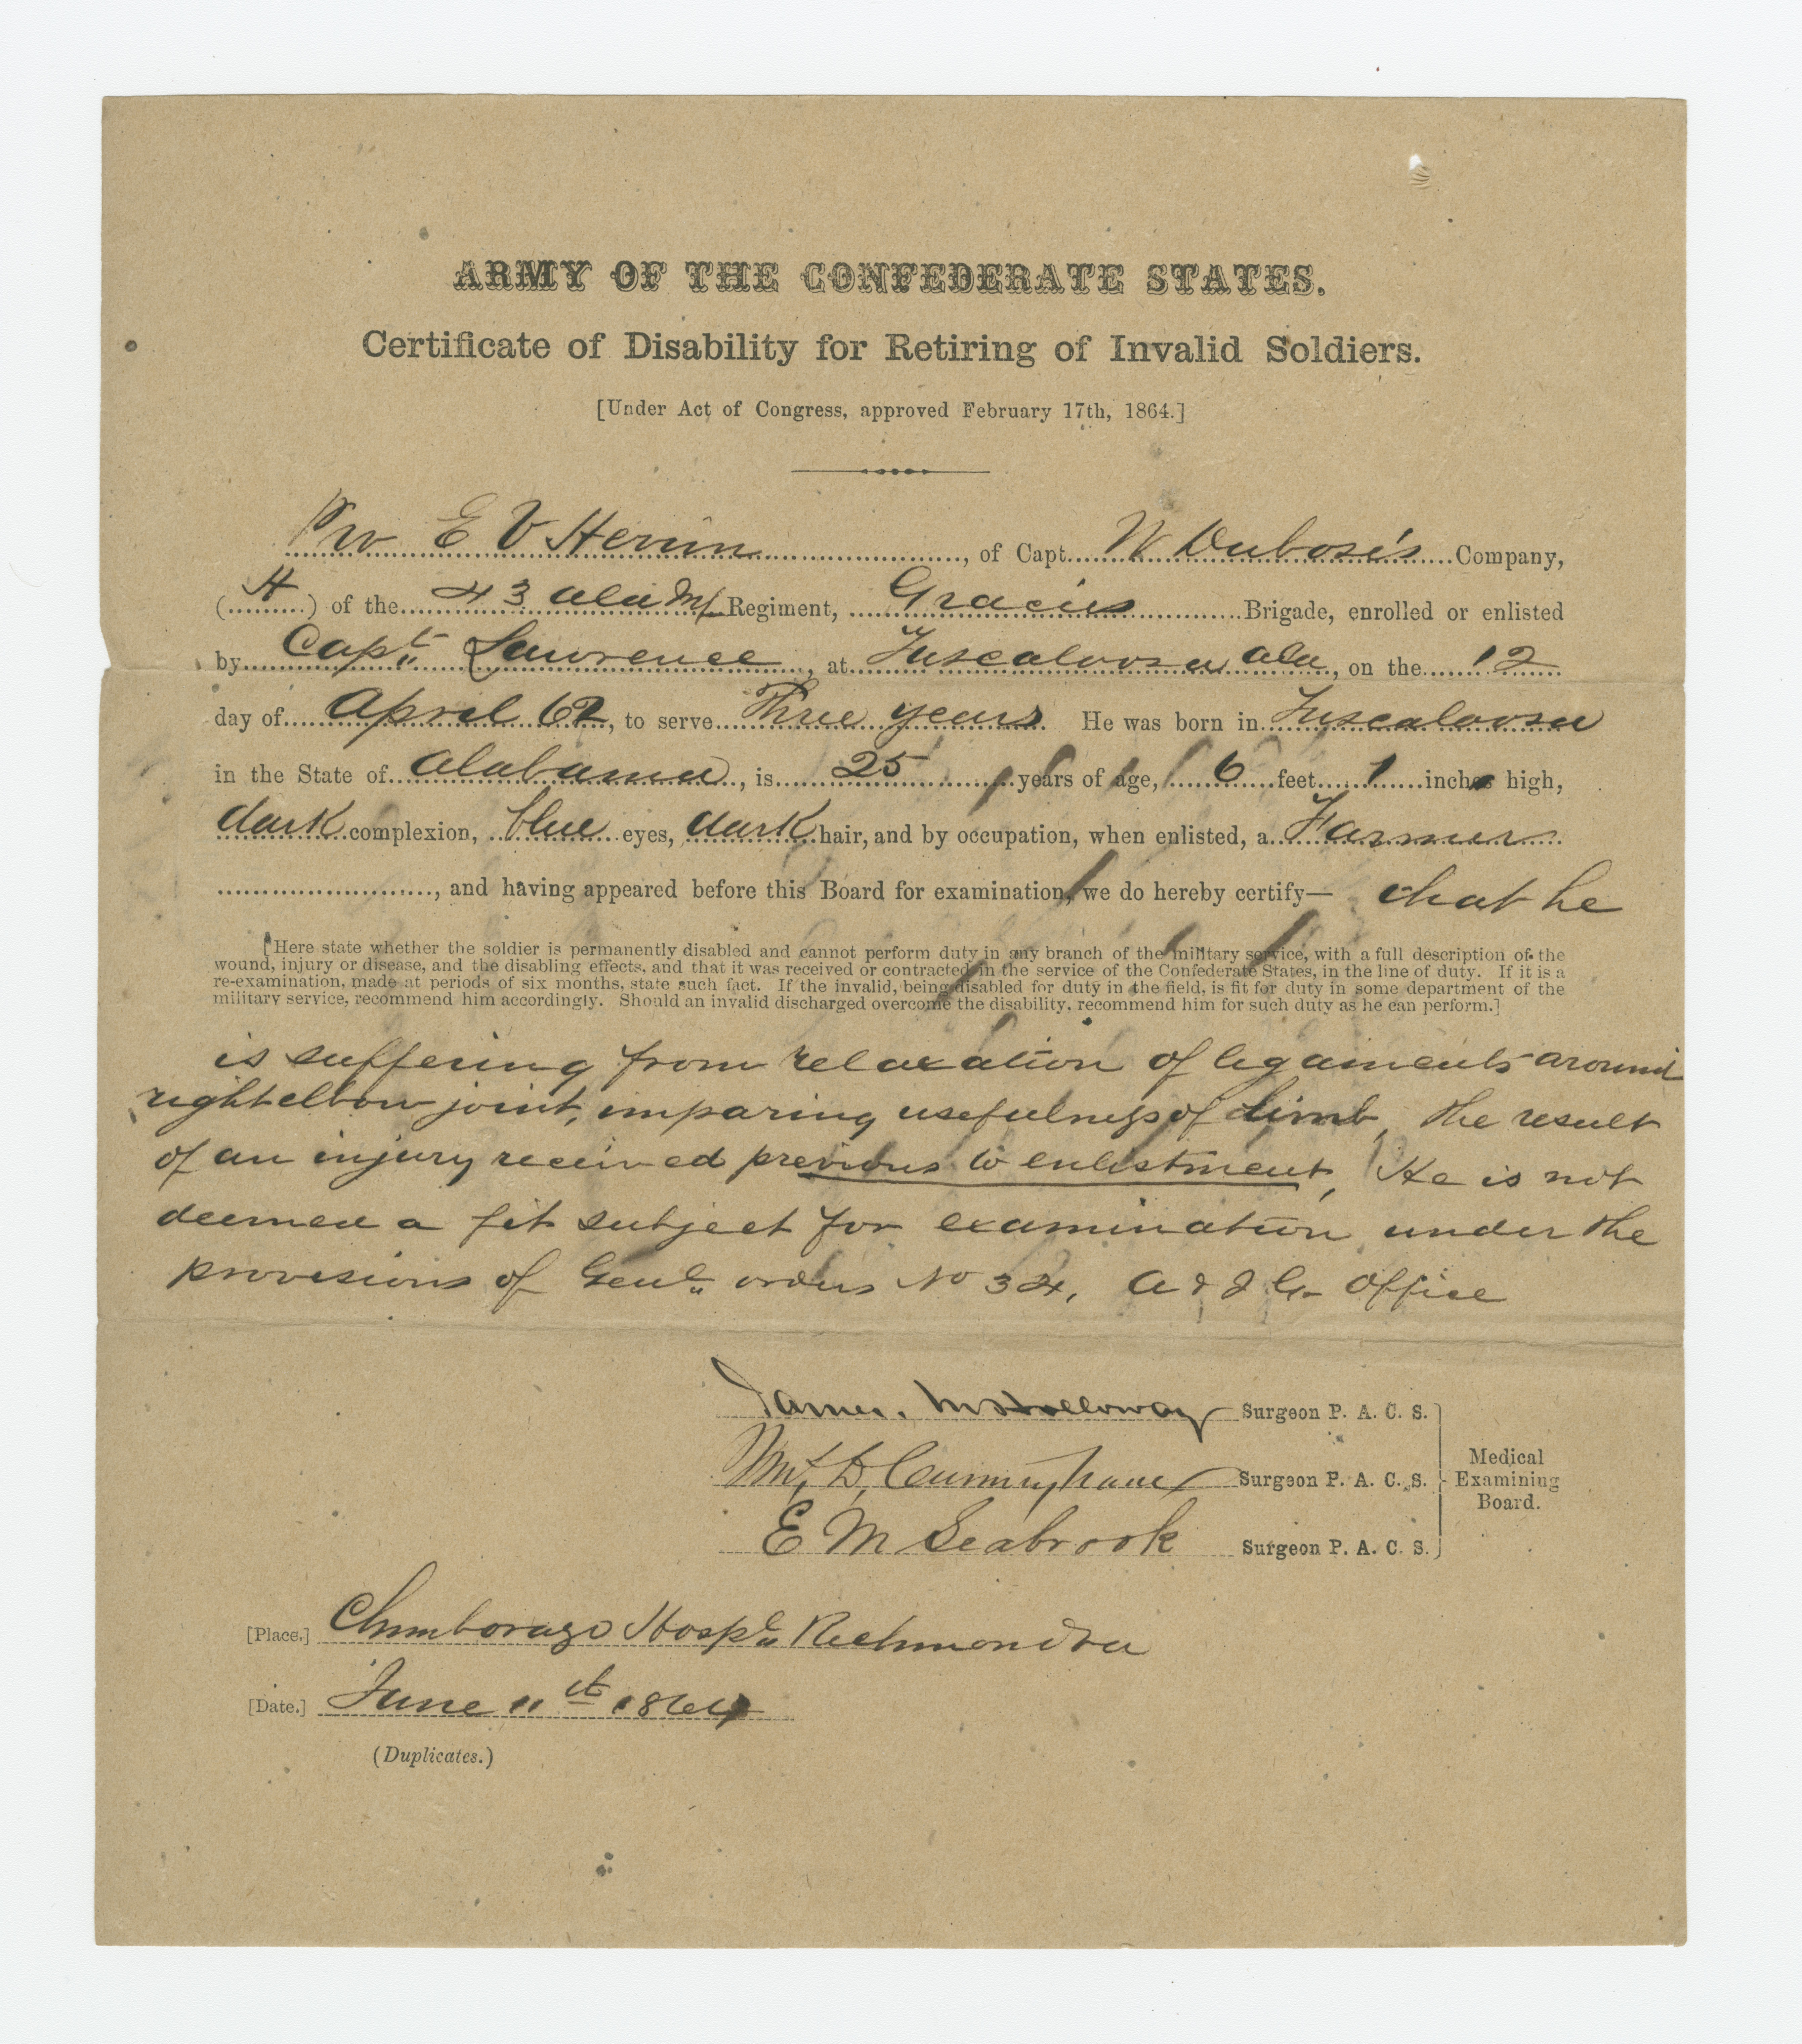 Certificate Of Disability For Retiring Soldiers The Wm Digital